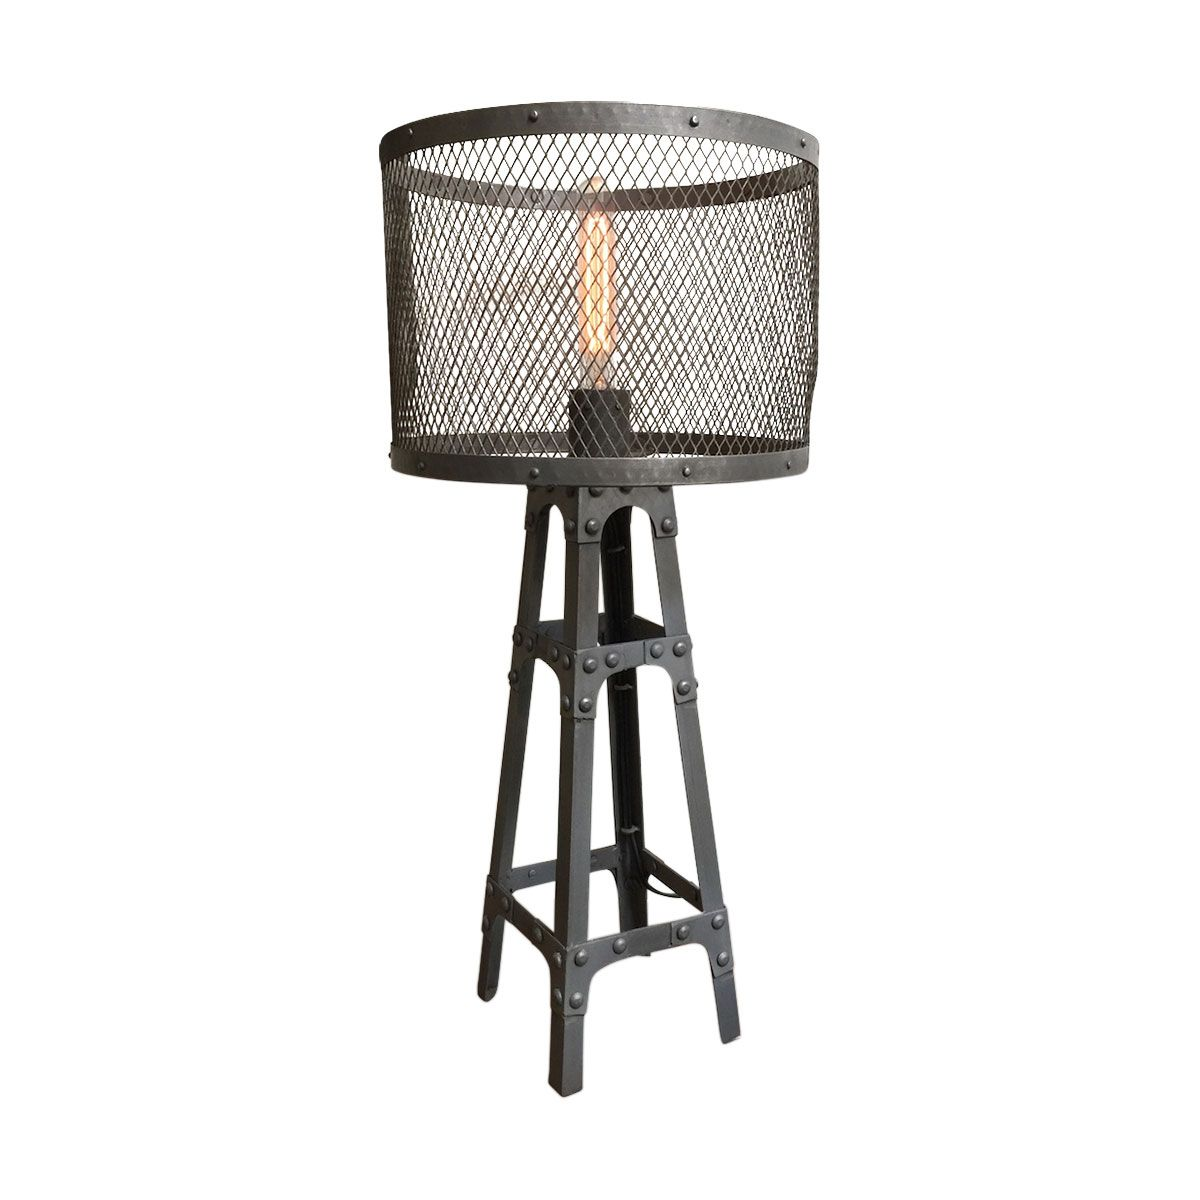 Iron Table Tower Lamp Forsale Trove Market Iron Table Lamp Tripod Lamp